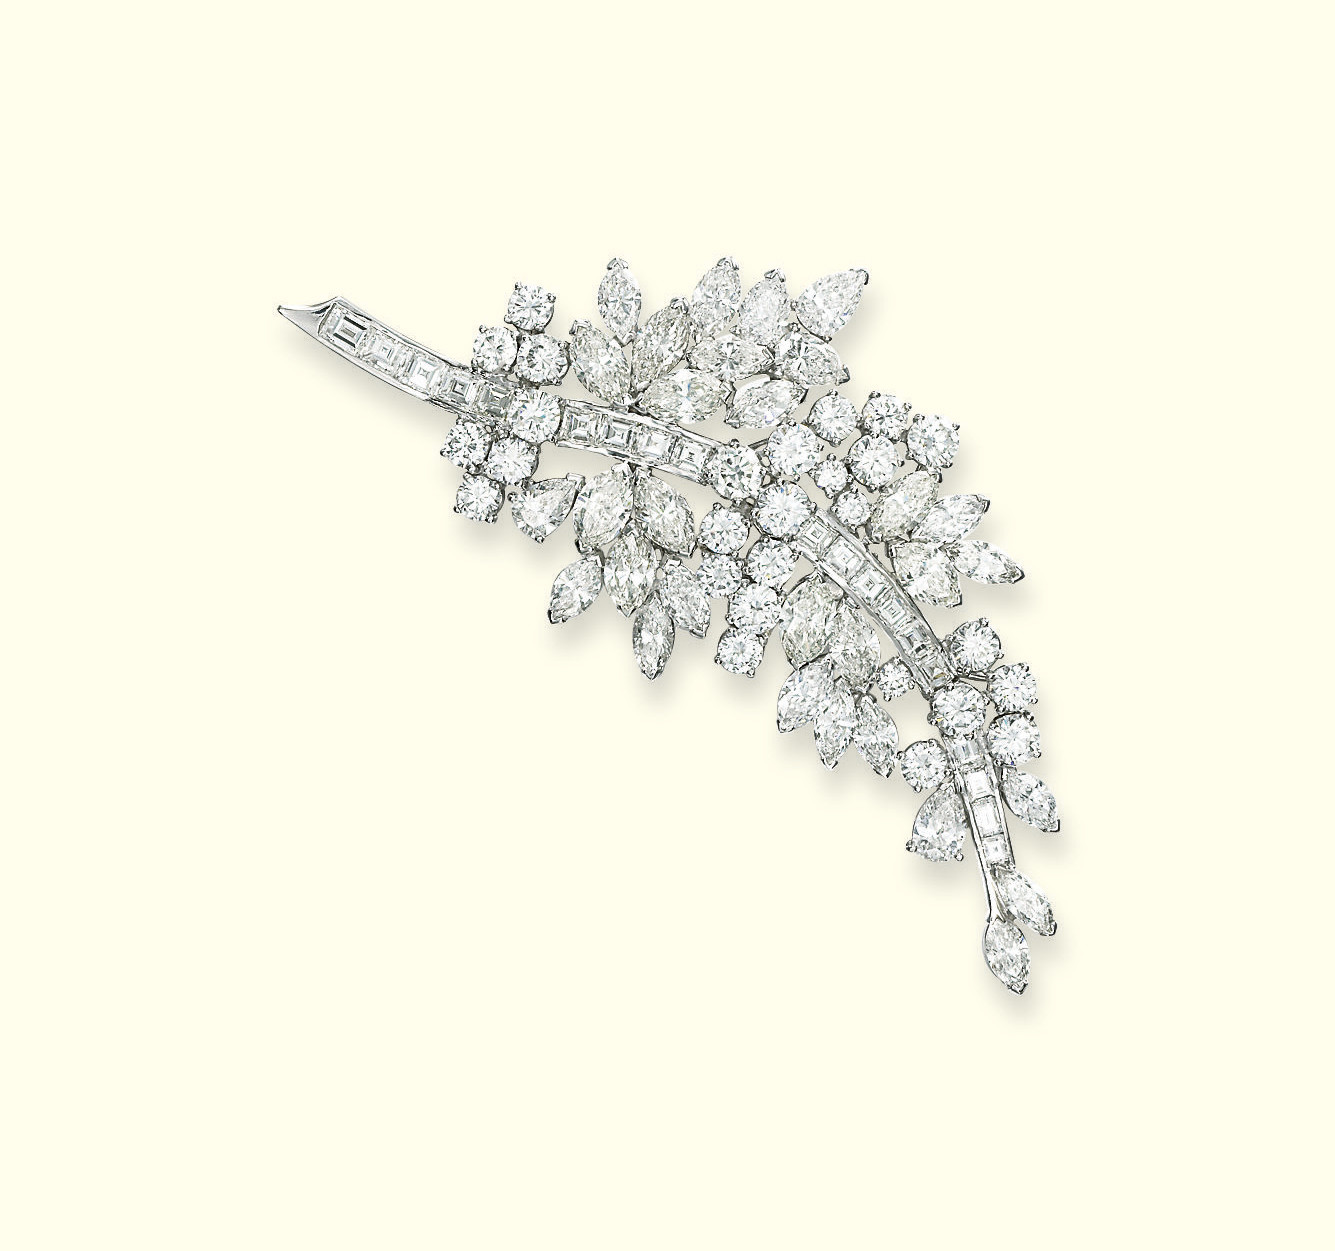 A DIAMOND BROOCH, BY JAHAN